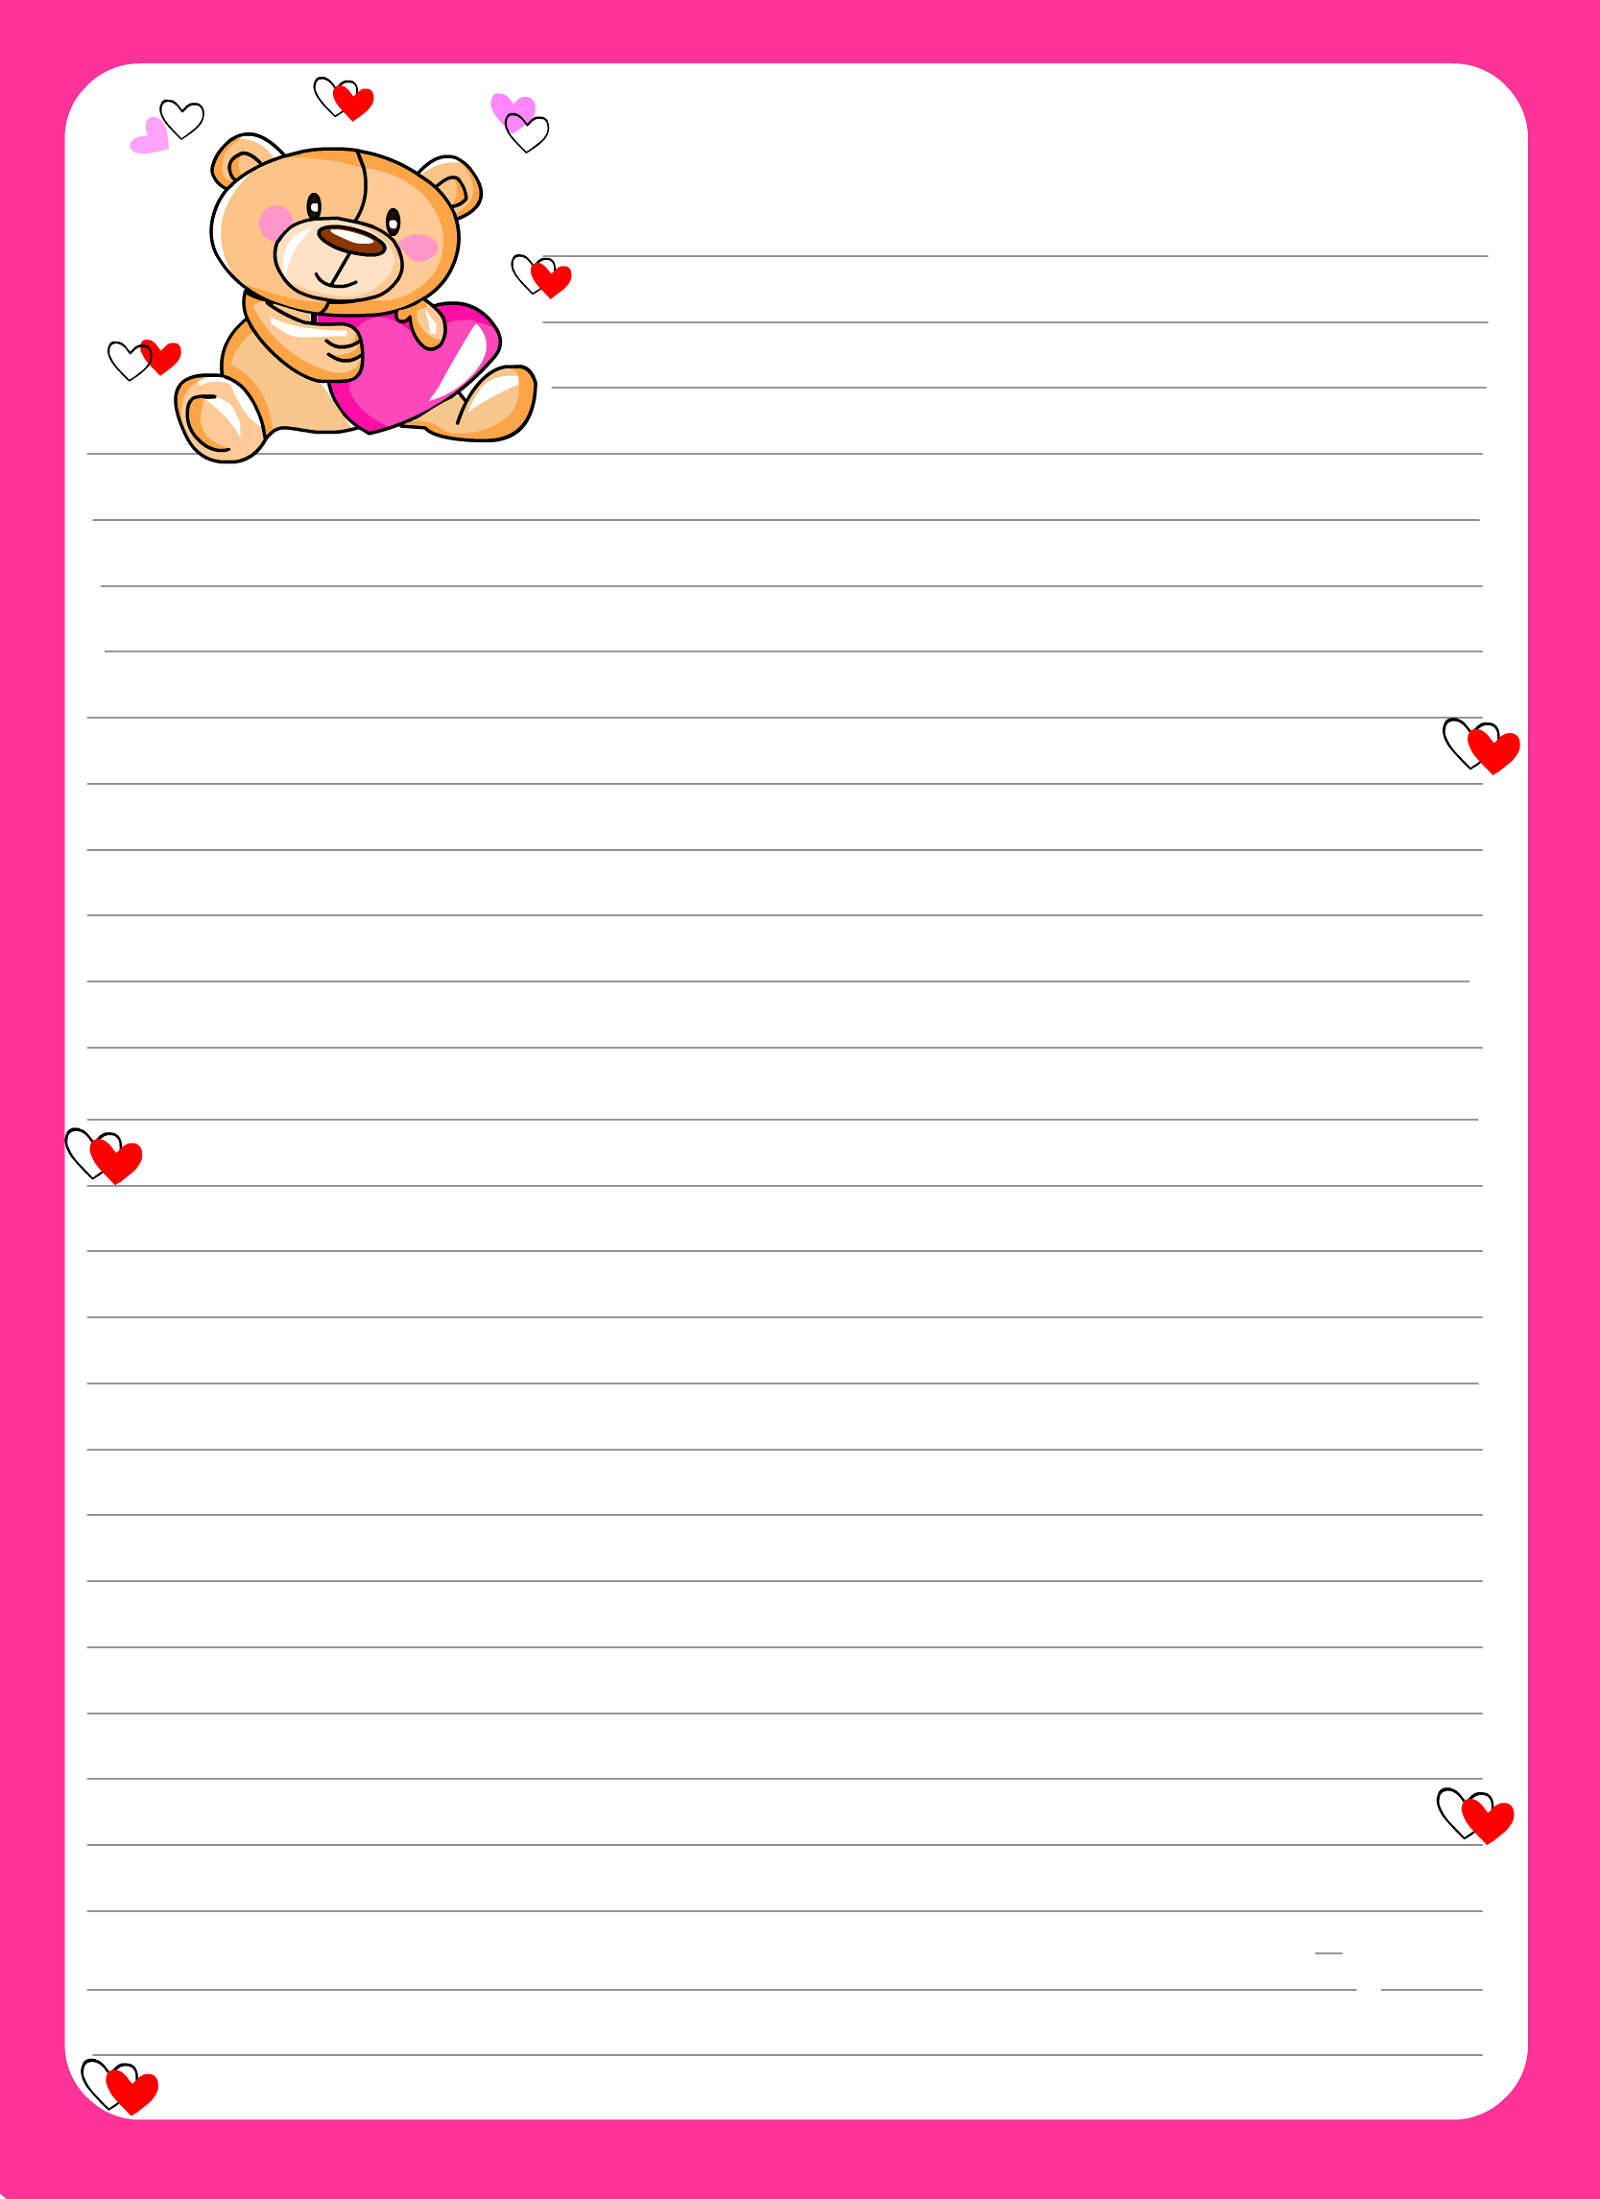 Lined Notebook Paper Template pink borders